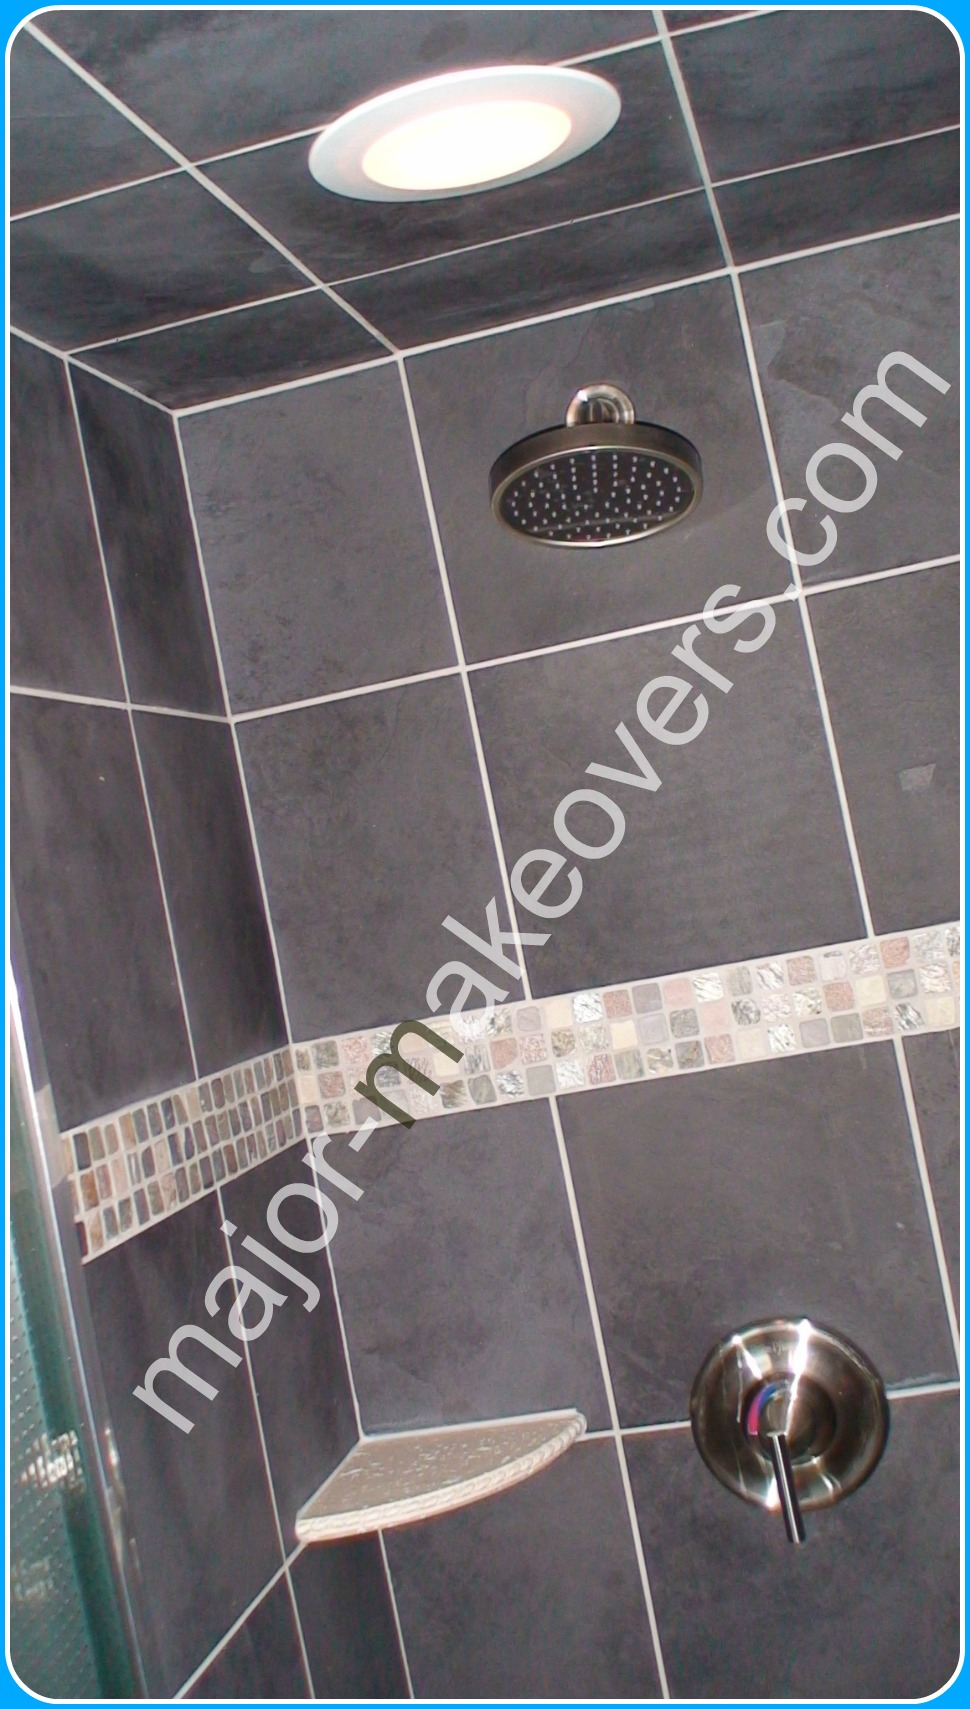 Riverside basement shower tile as 12x12 inch black ceramic including on the shower ceiling. Decorative tile line and 2 corner soap dishes complete the tile installation.